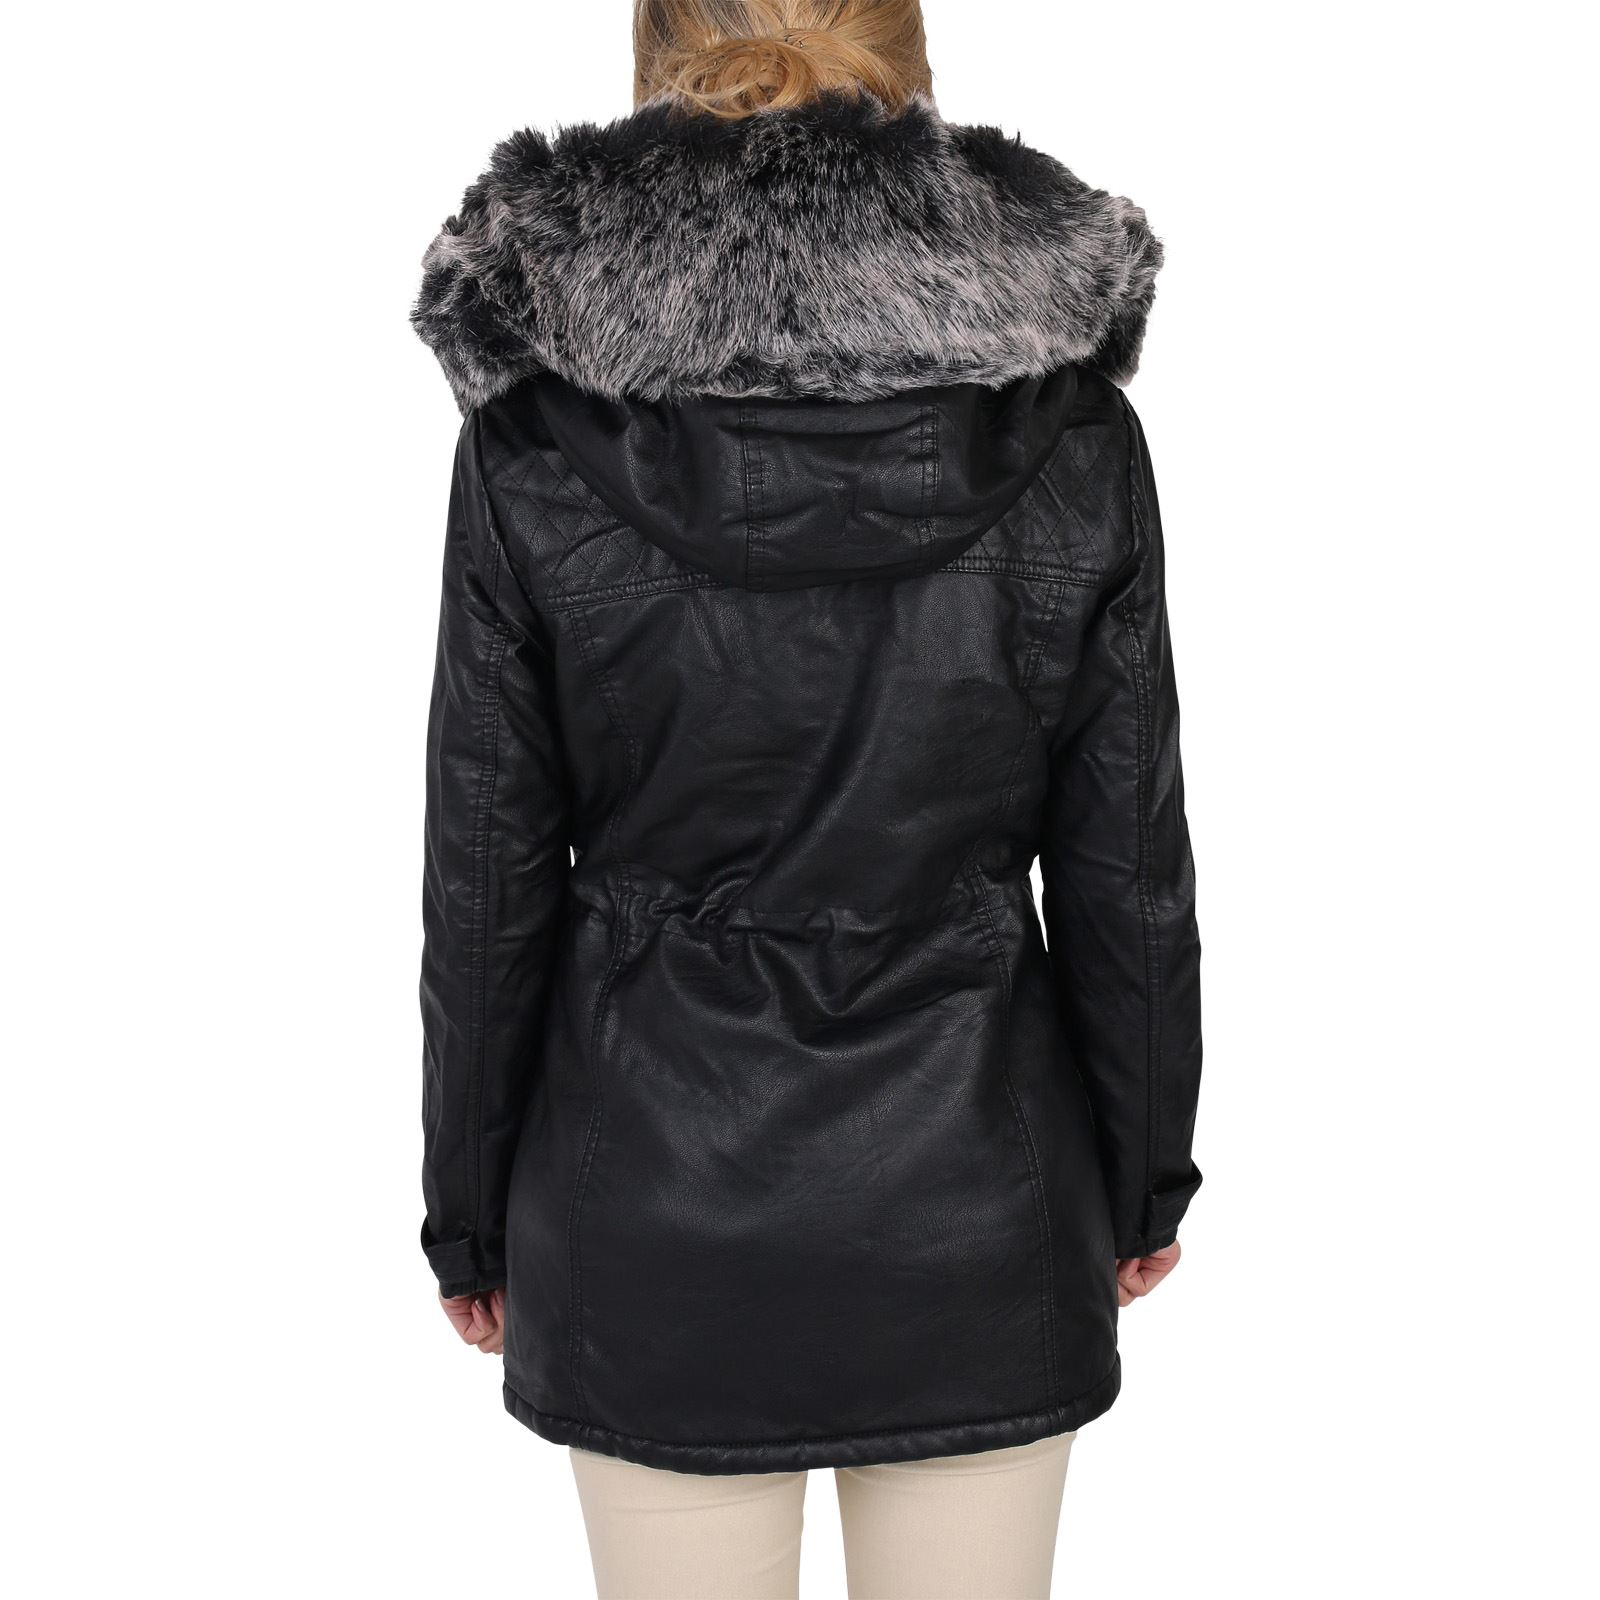 womens ladies warm faux fur lined leather hooded long winter parka jacket coat ebay. Black Bedroom Furniture Sets. Home Design Ideas